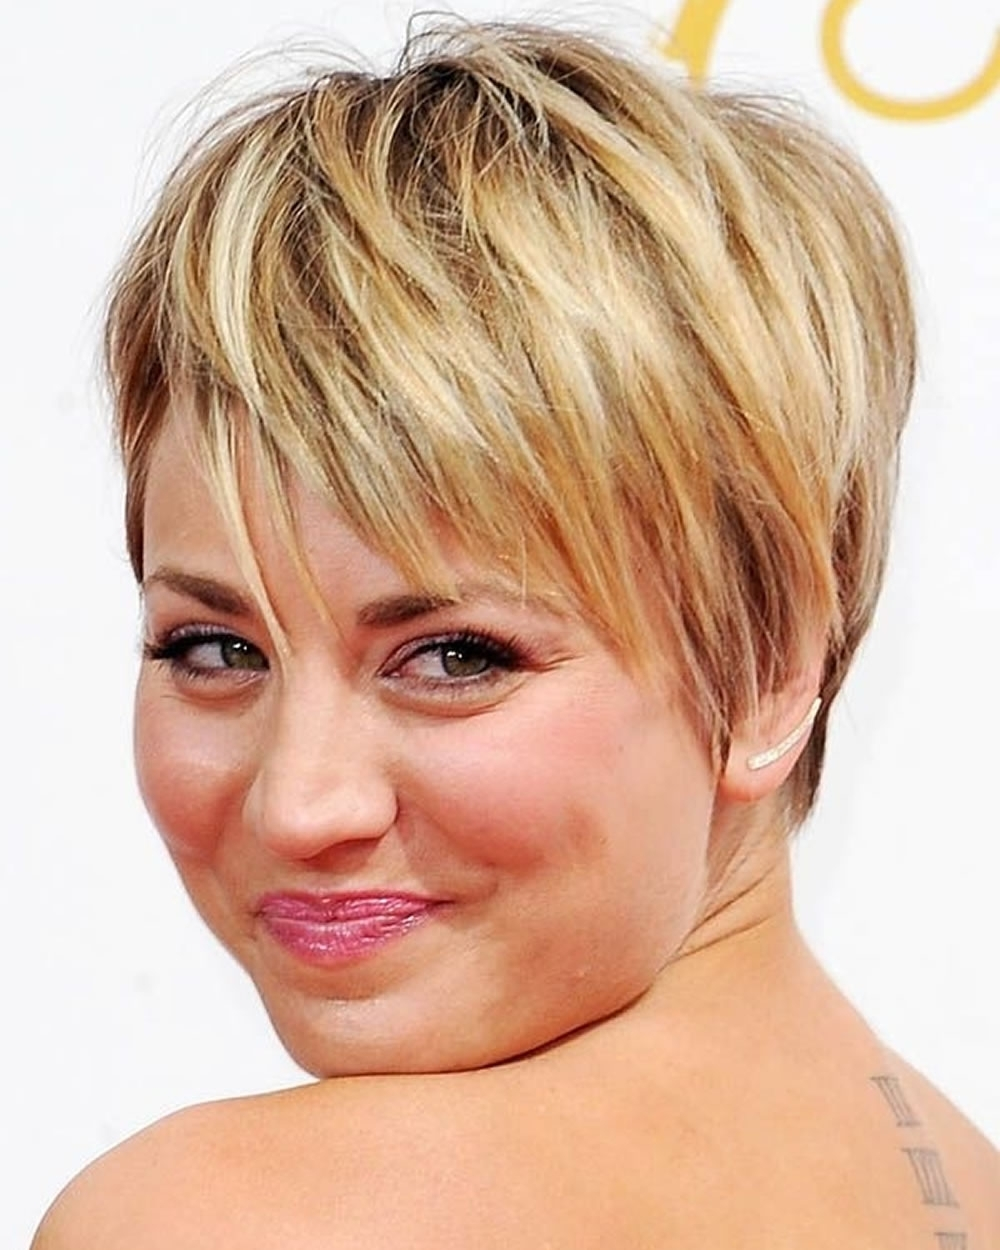 Hairstyles Fine Hair For Round Face 2018 2019 Pertaining To Most Recent Pixie Hairstyles For Thin Fine Hair (View 14 of 15)